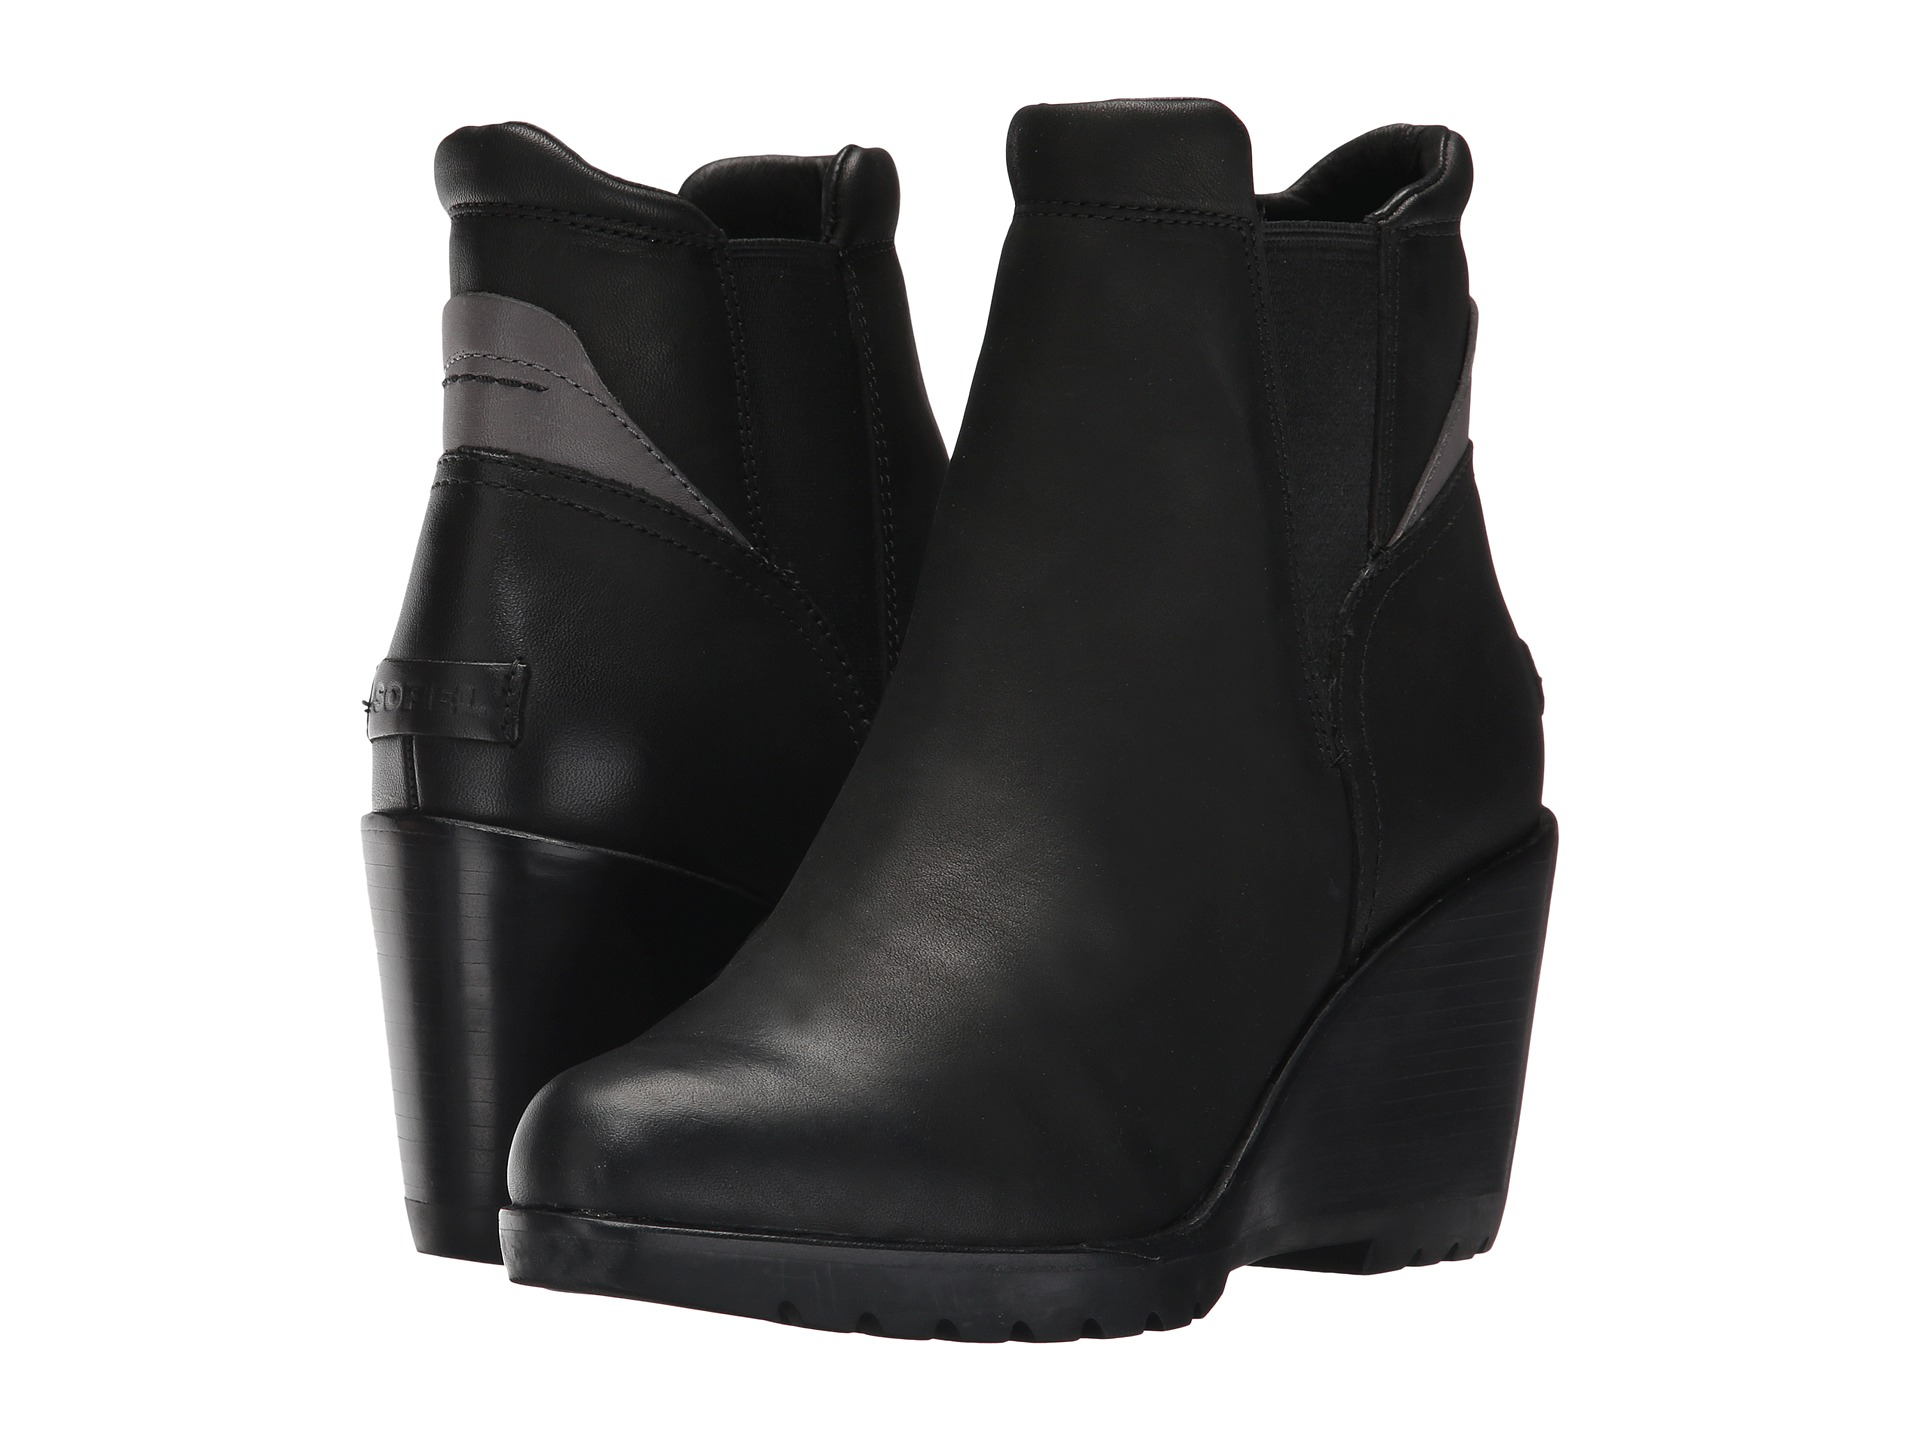 114b4a4acbb A defined tread and a refined waterproof upper make this sleek wedge bootie  a go to for wearing all day (and night) long. The After Hours Chelsea keeps  you ...